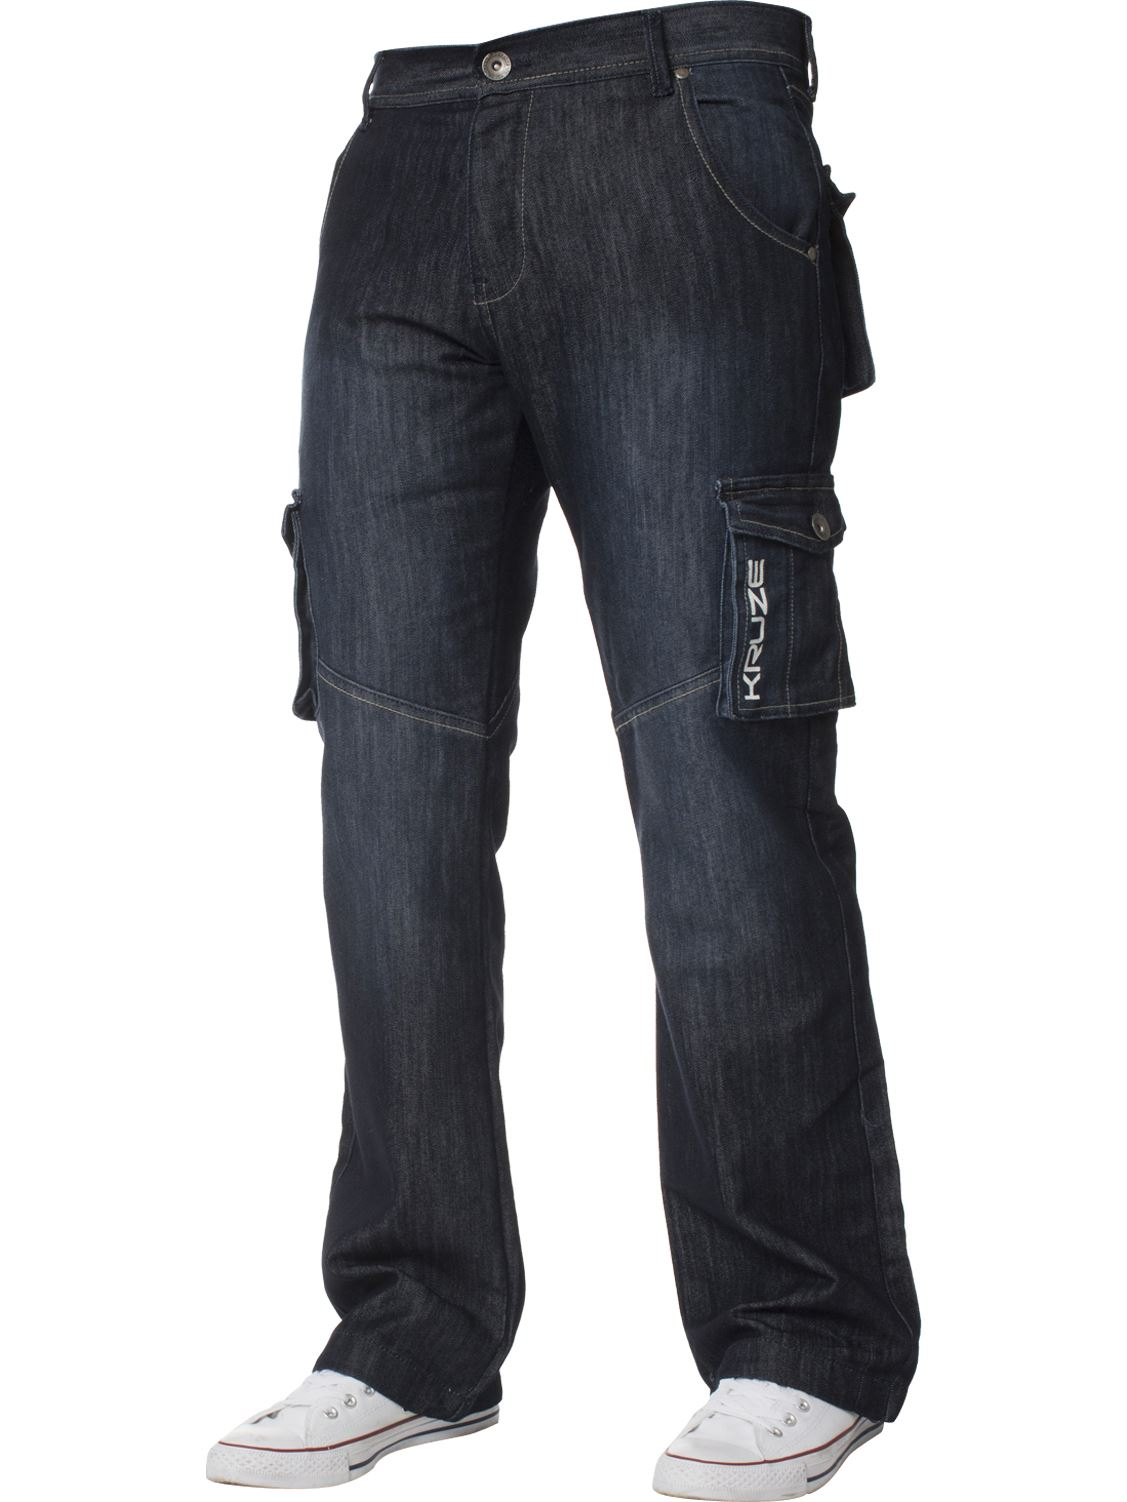 Mens-Cargo-Combat-Trousers-Jeans-Heavy-Duty-Work-Casual-Pants-Big-Tall-All-Sizes thumbnail 4